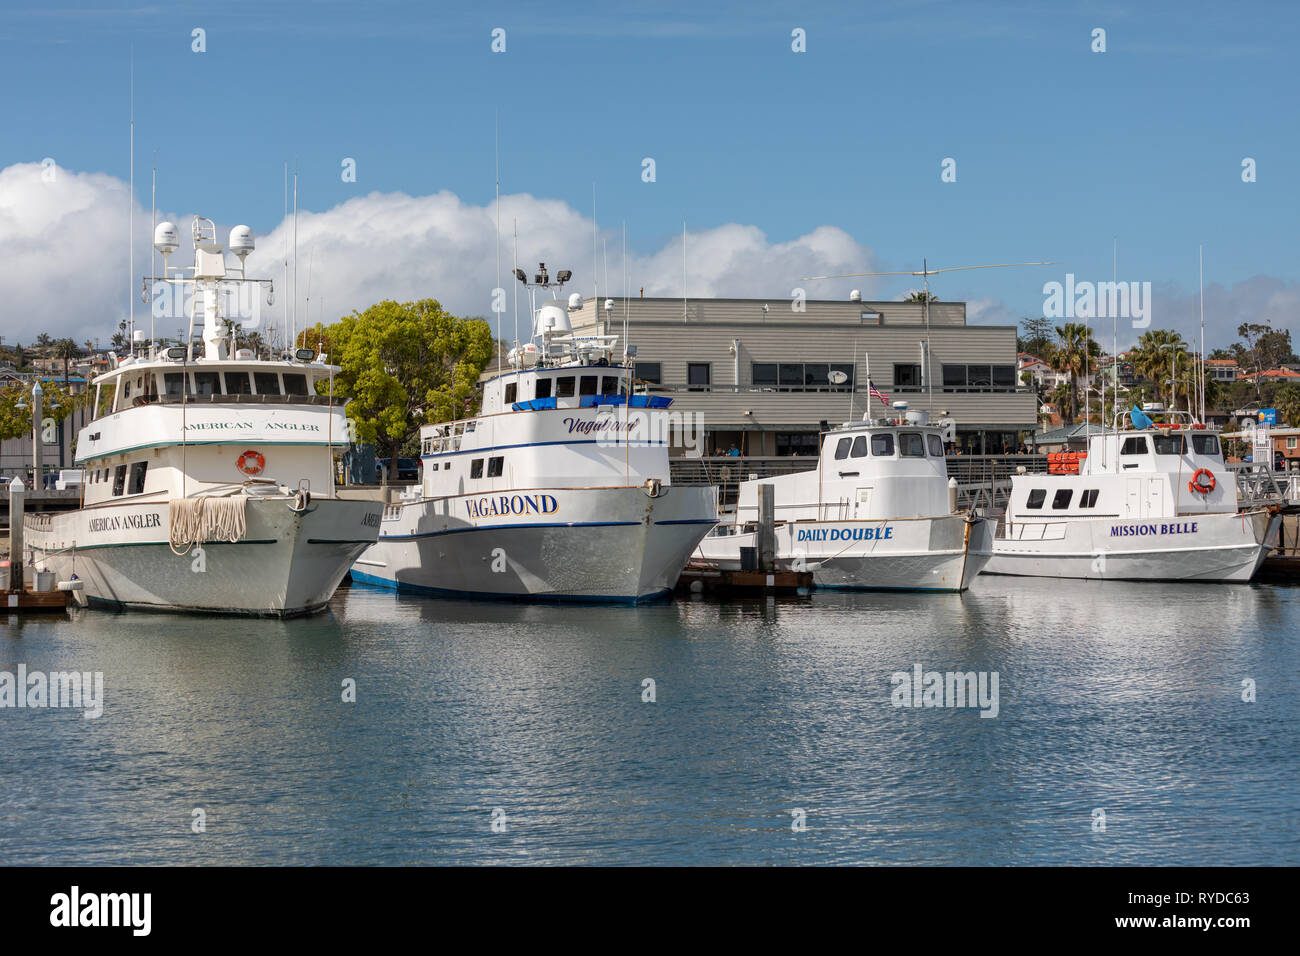 Fishing boats in San Diego - Stock Image